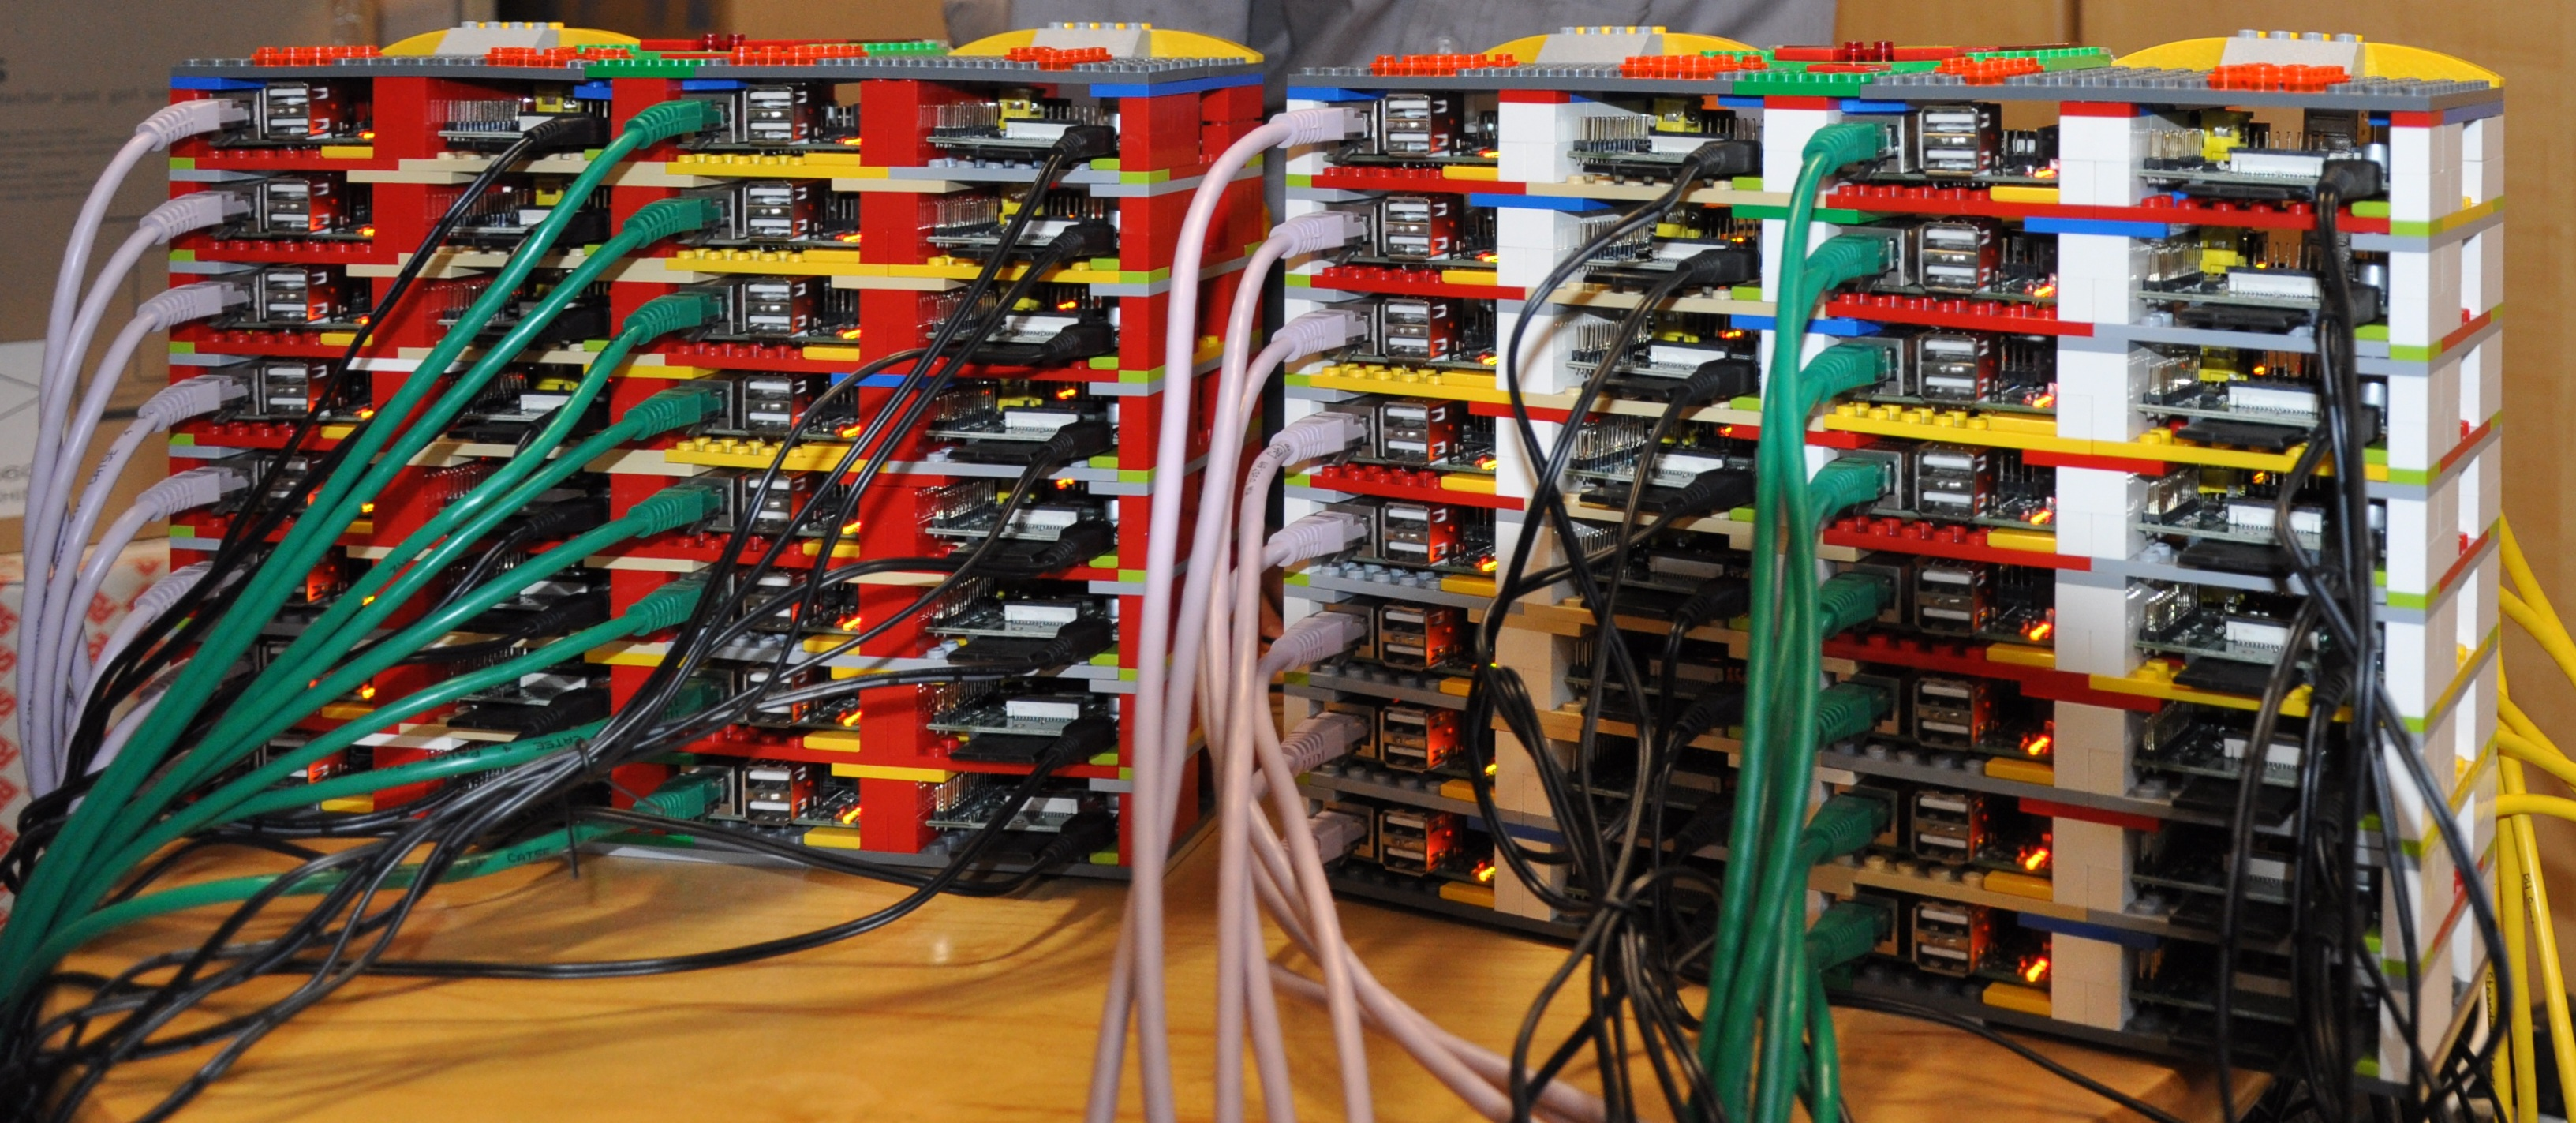 Raspberry Pi And Lego Supercomputer Pictures Southampton